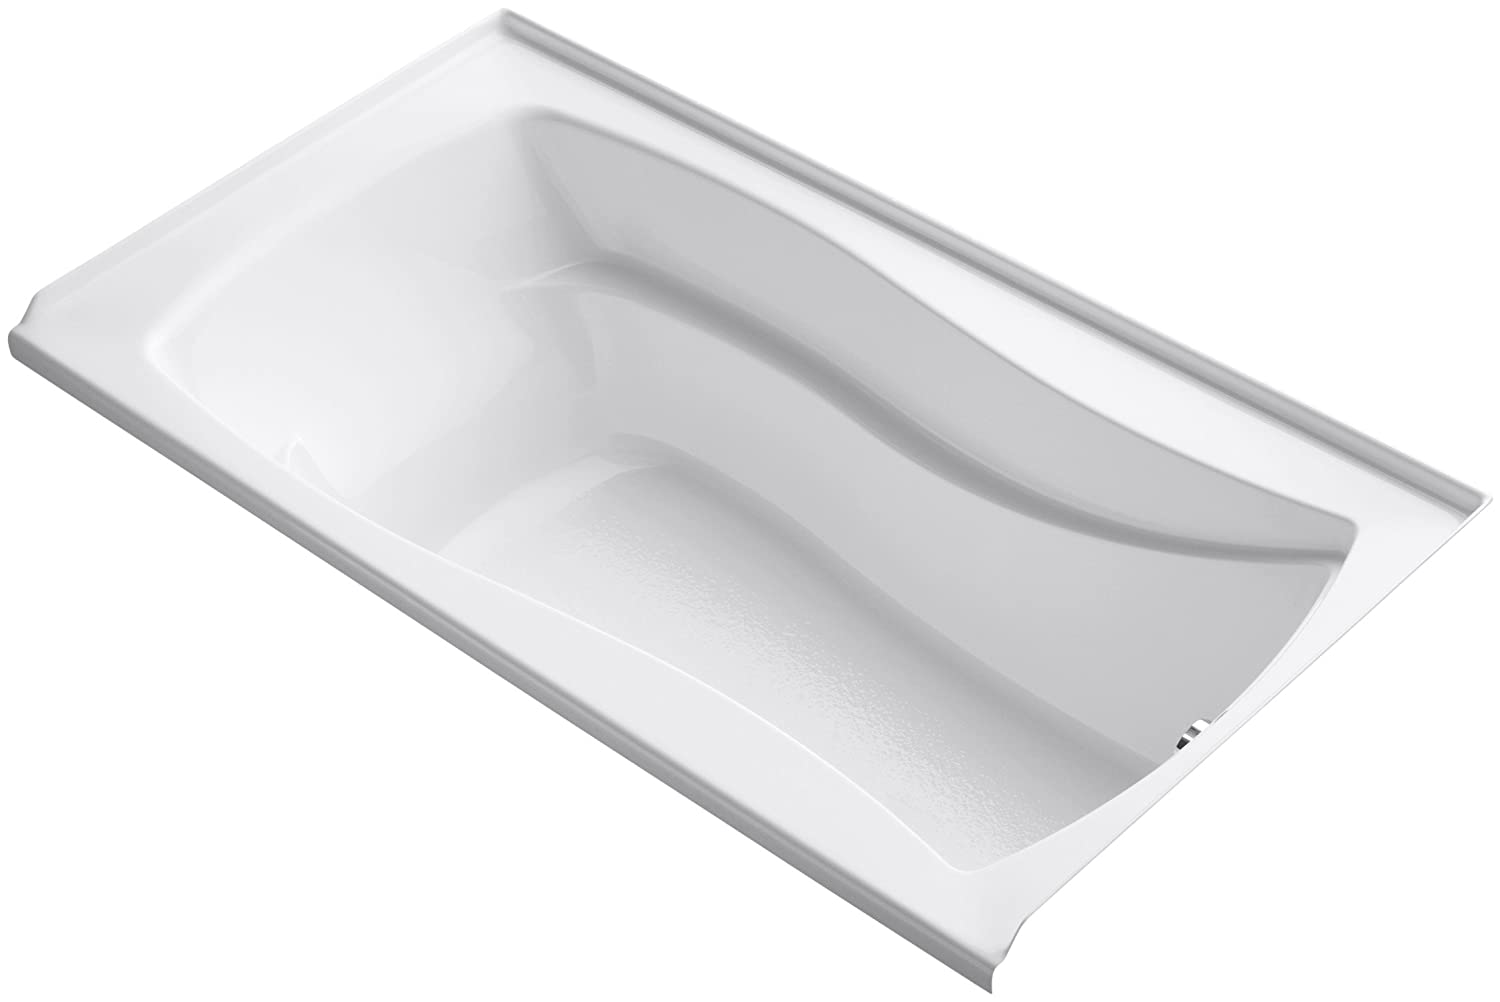 KOHLER K-1229-R-0 Mariposa 5.5-Foot Bath, White